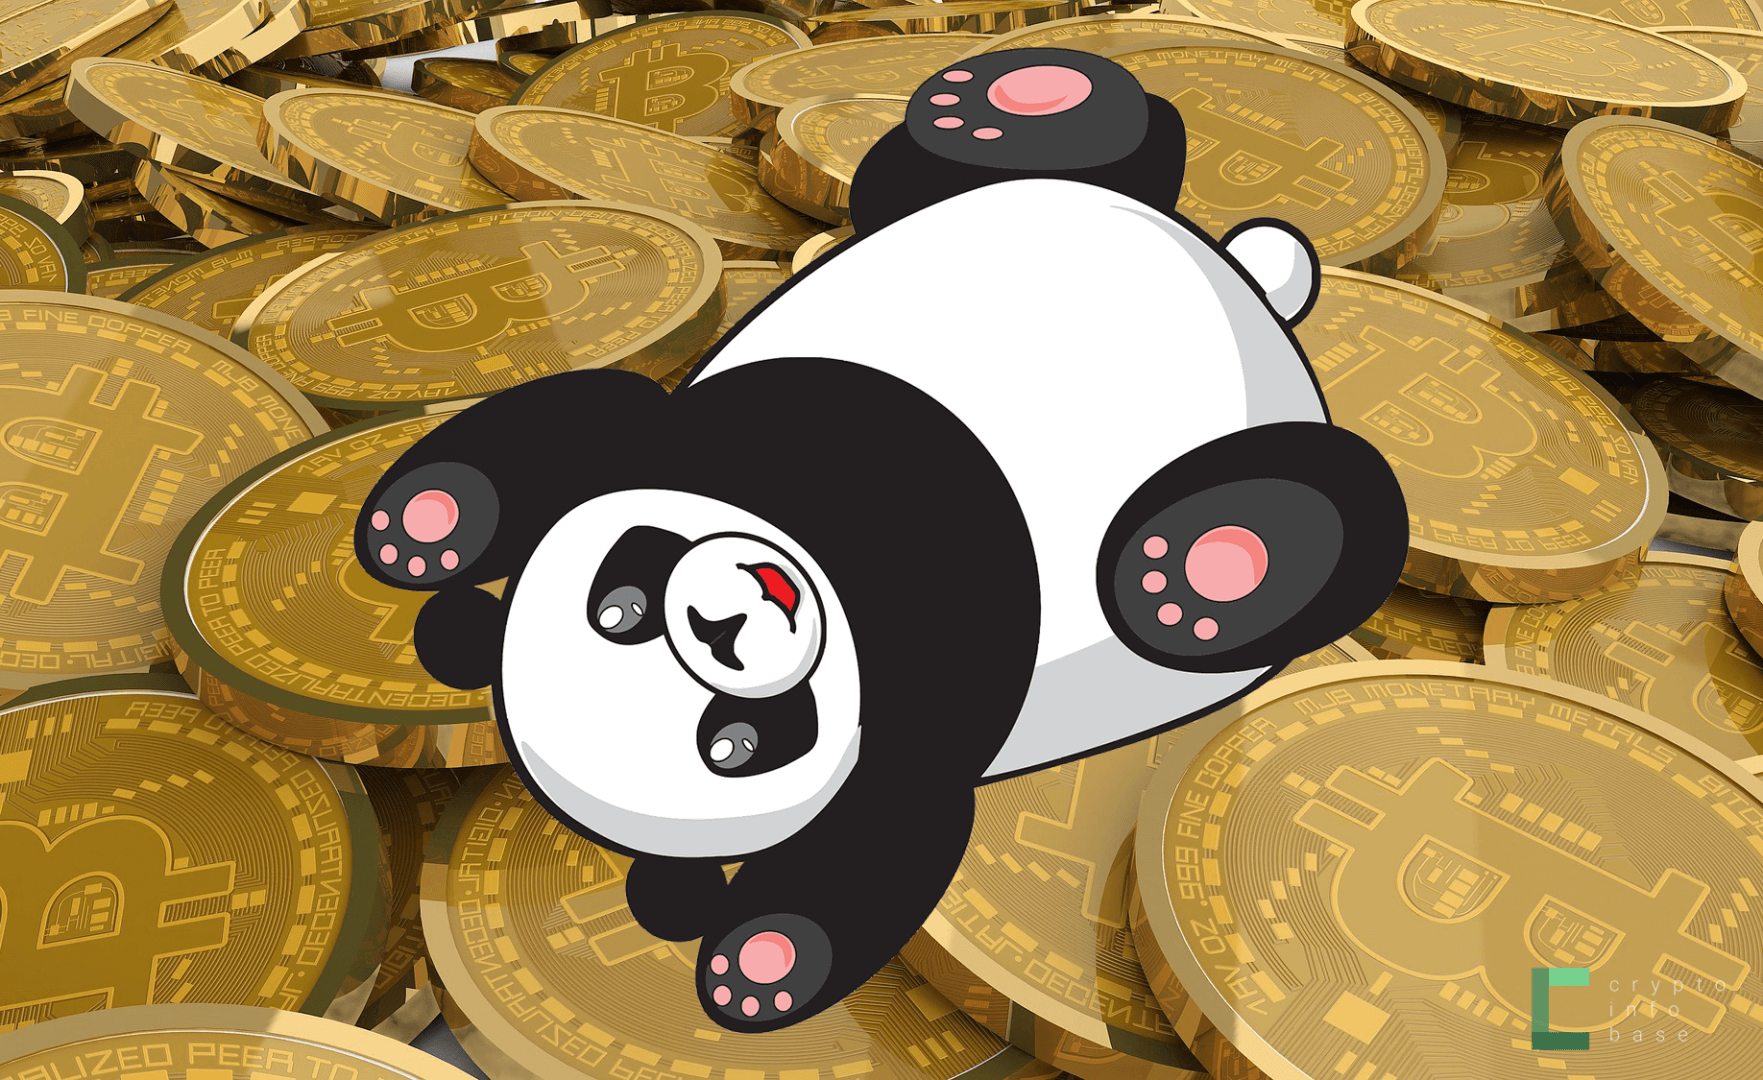 The People's Bank of China Clarified its Stance on Cryptocurrency